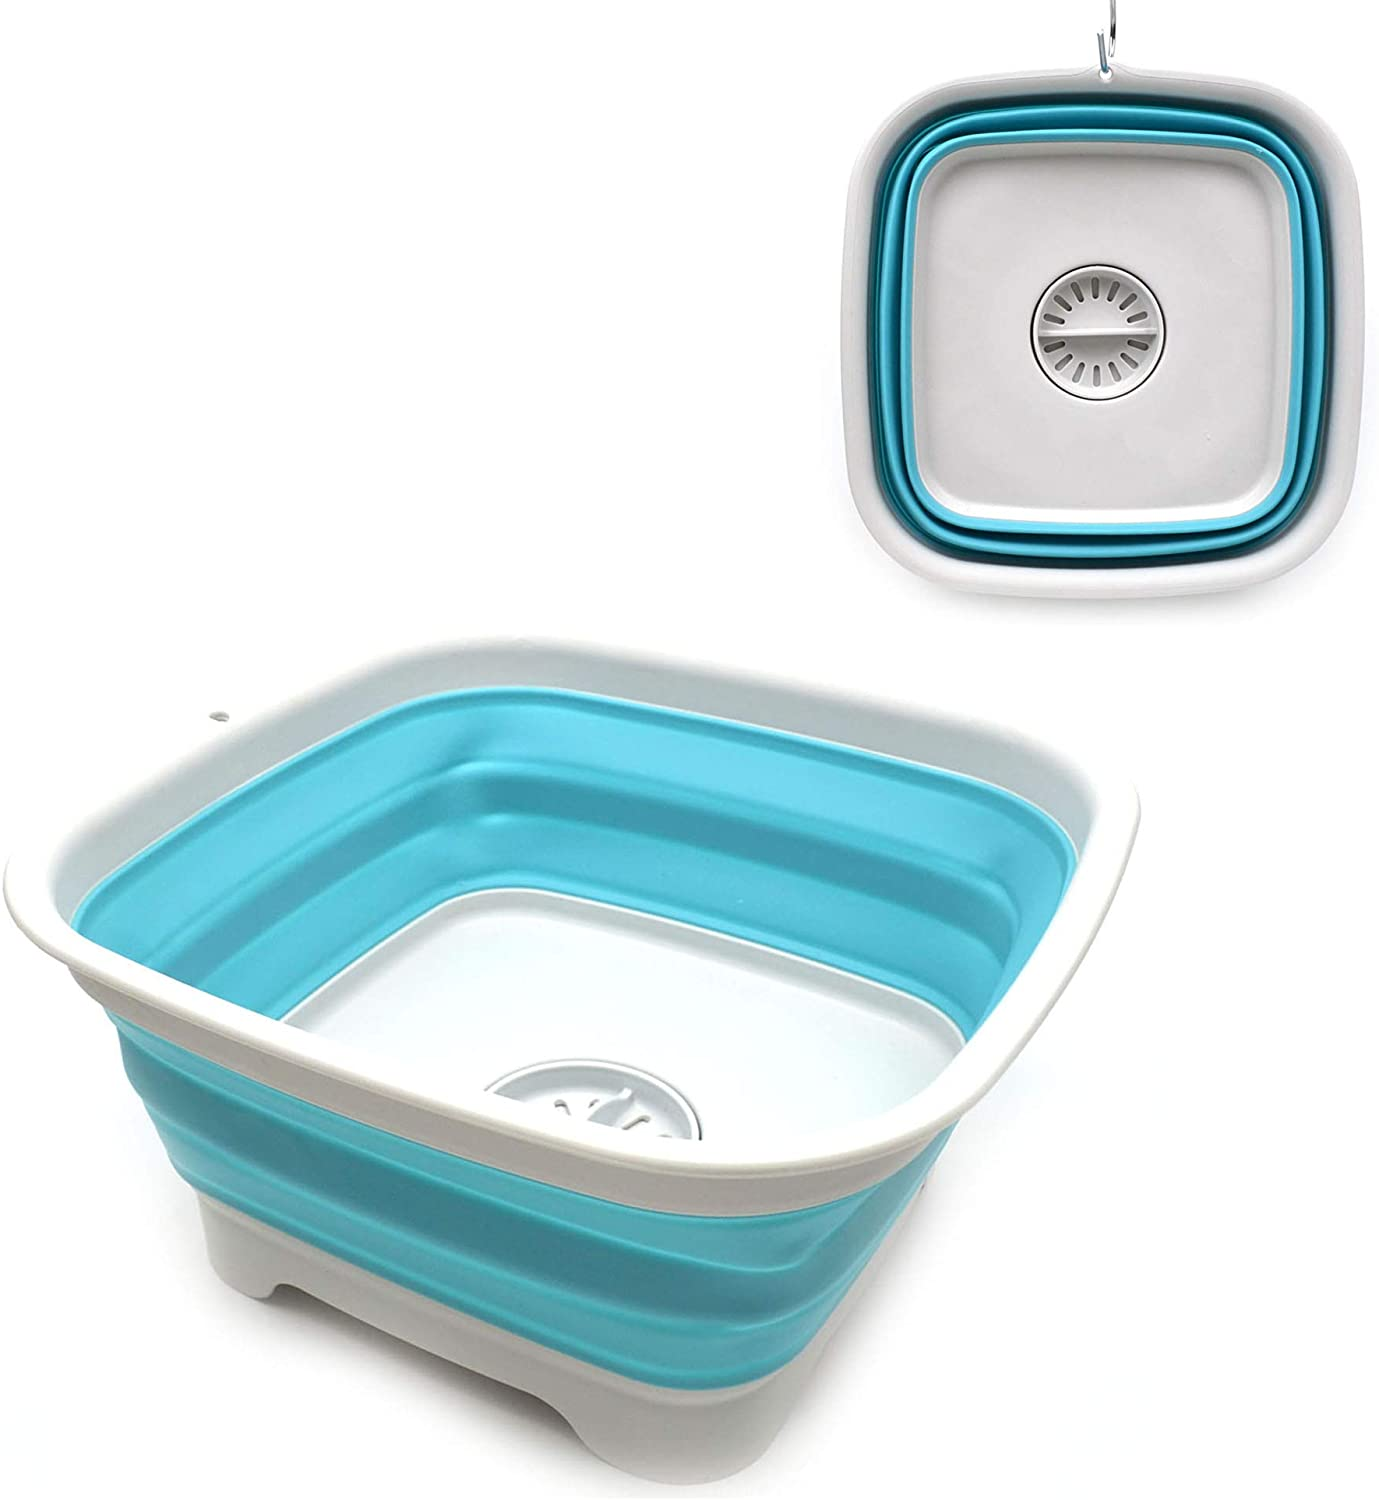 SAMMART 9.3L (2.46Gallon) Collapsible Dishpan with Draining Plug - Foldable Washing Basin - Portable Dish Washing Tub - Space Saving Kitchen Storage Tray (1, Grey/Bright Blue)